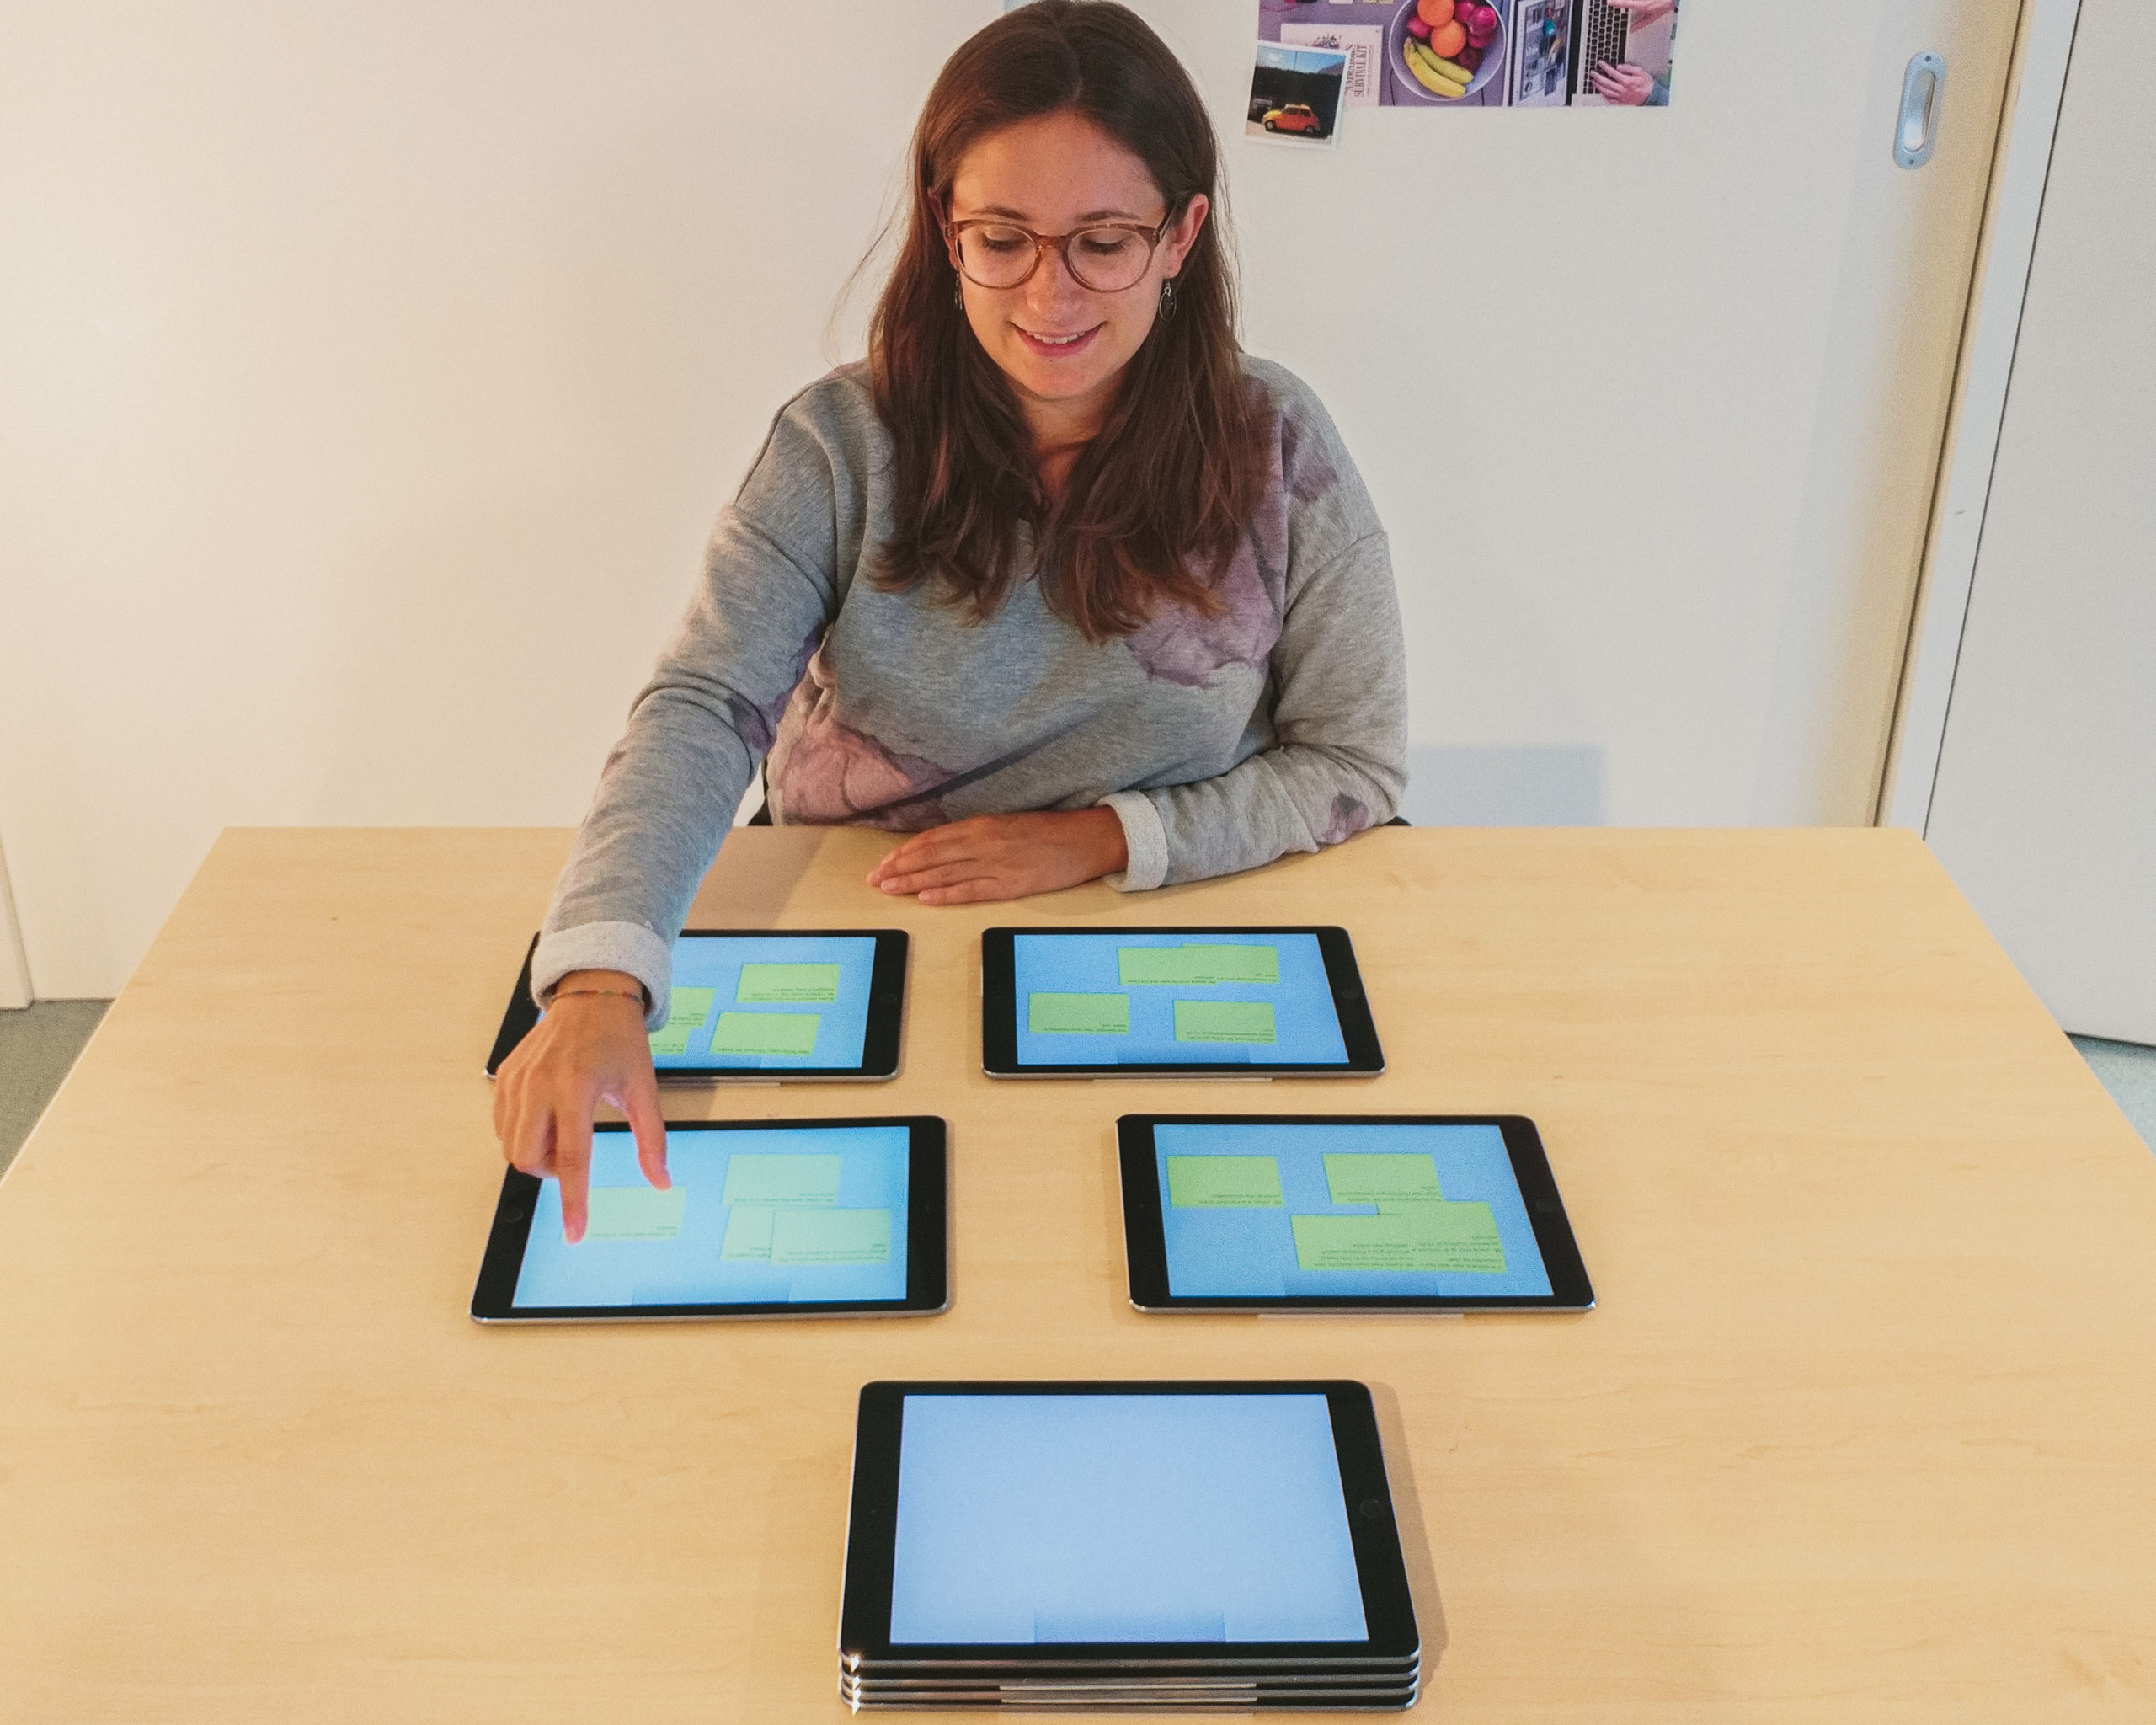 'It's in my other hand!' - Studying the Interplay of Interaction Techniques and Multi-Tablet Activities